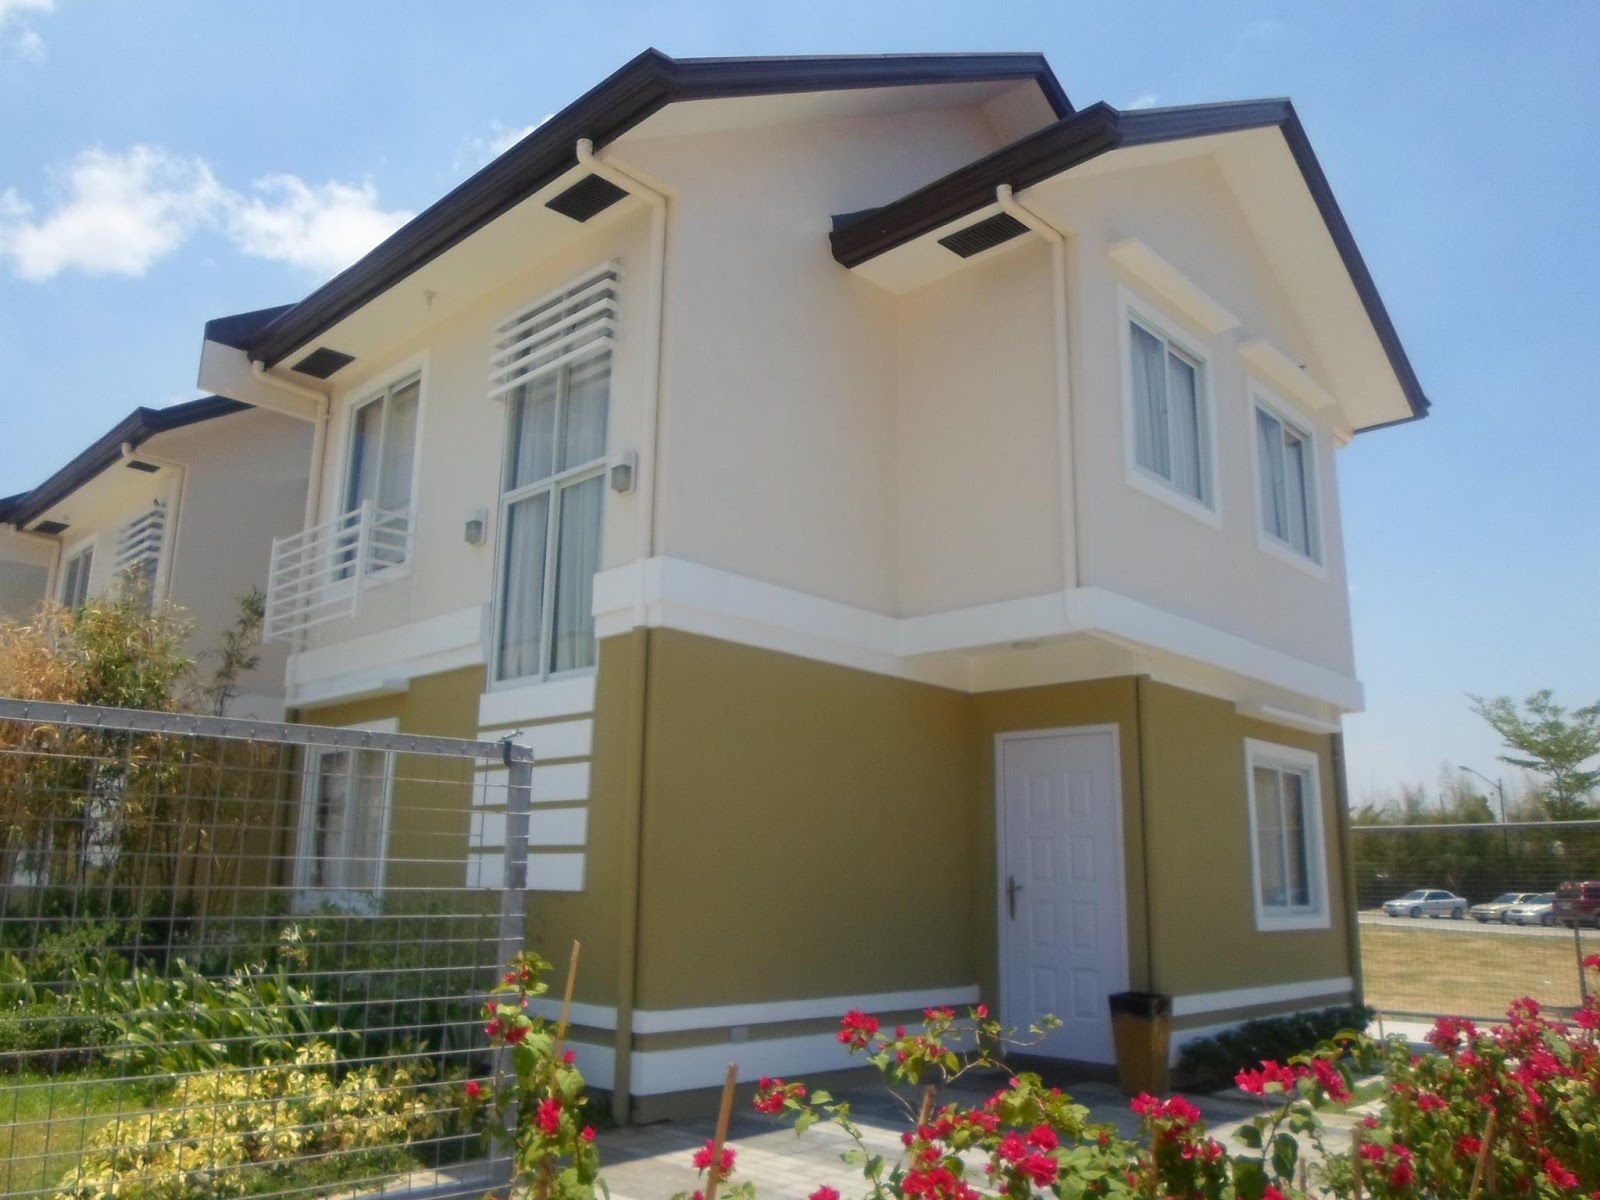 Affordable house design in the philippines lancaster new for Affordable house